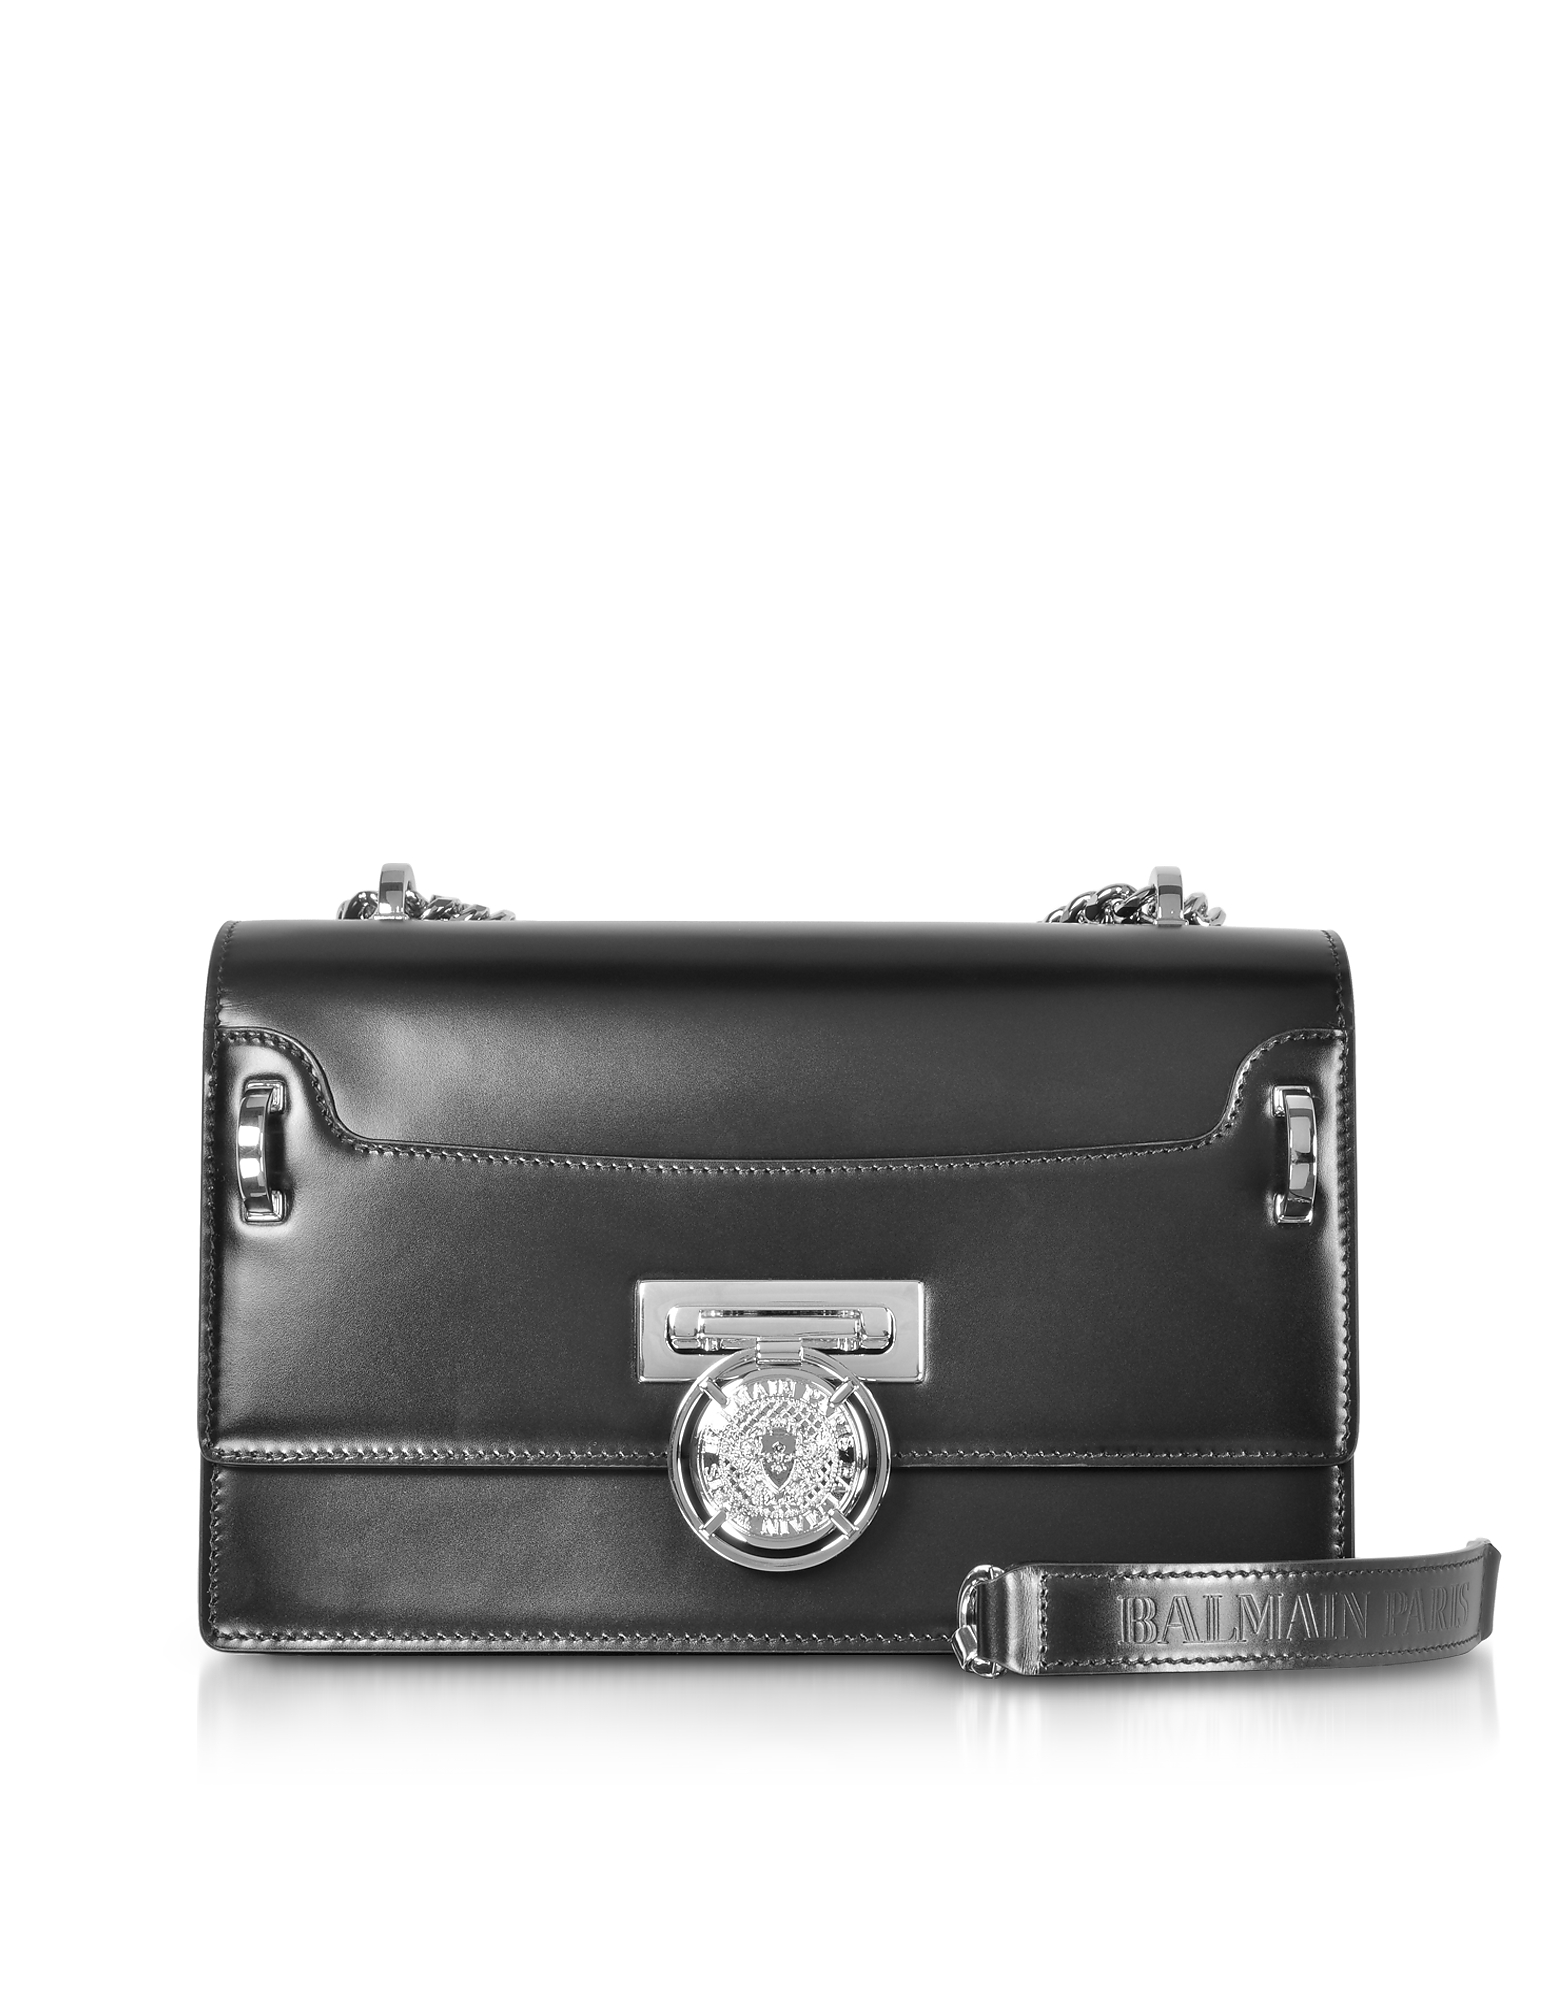 Balmain Handbags, Black Smooth Leather BBox 25 Flap Shoulder Bag